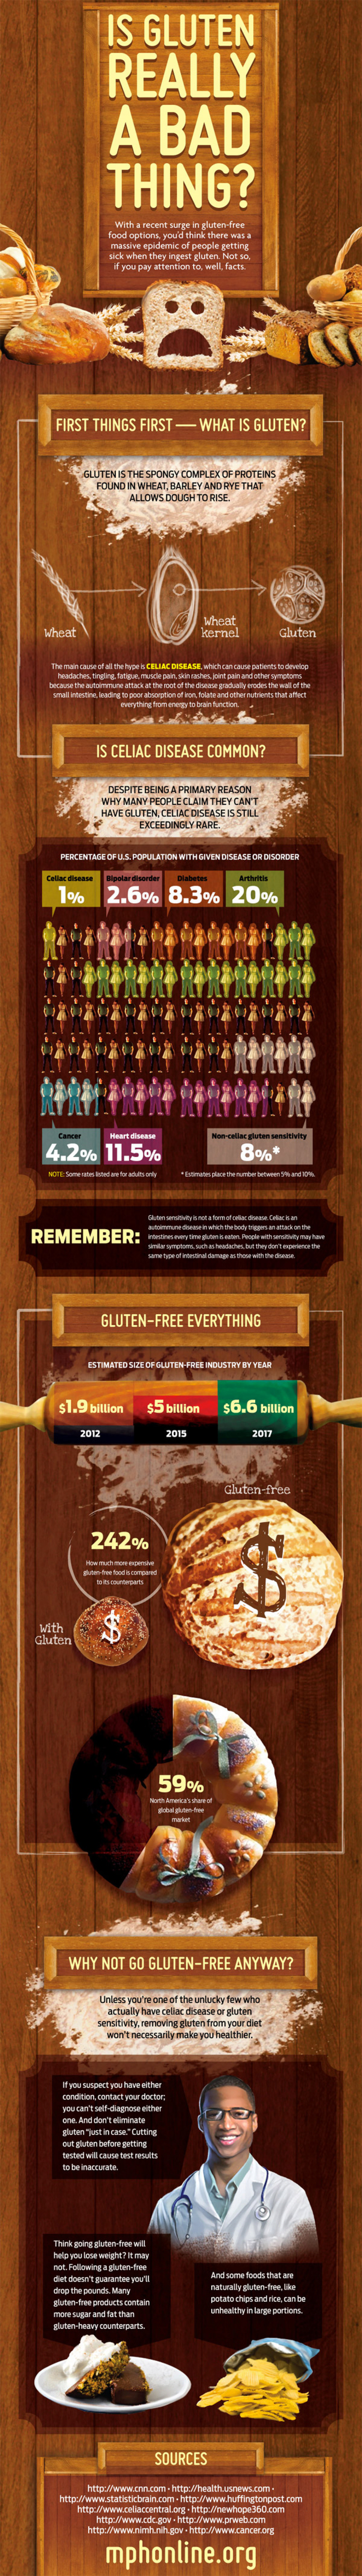 Is Gluten Really a Bad Thing? Infographic